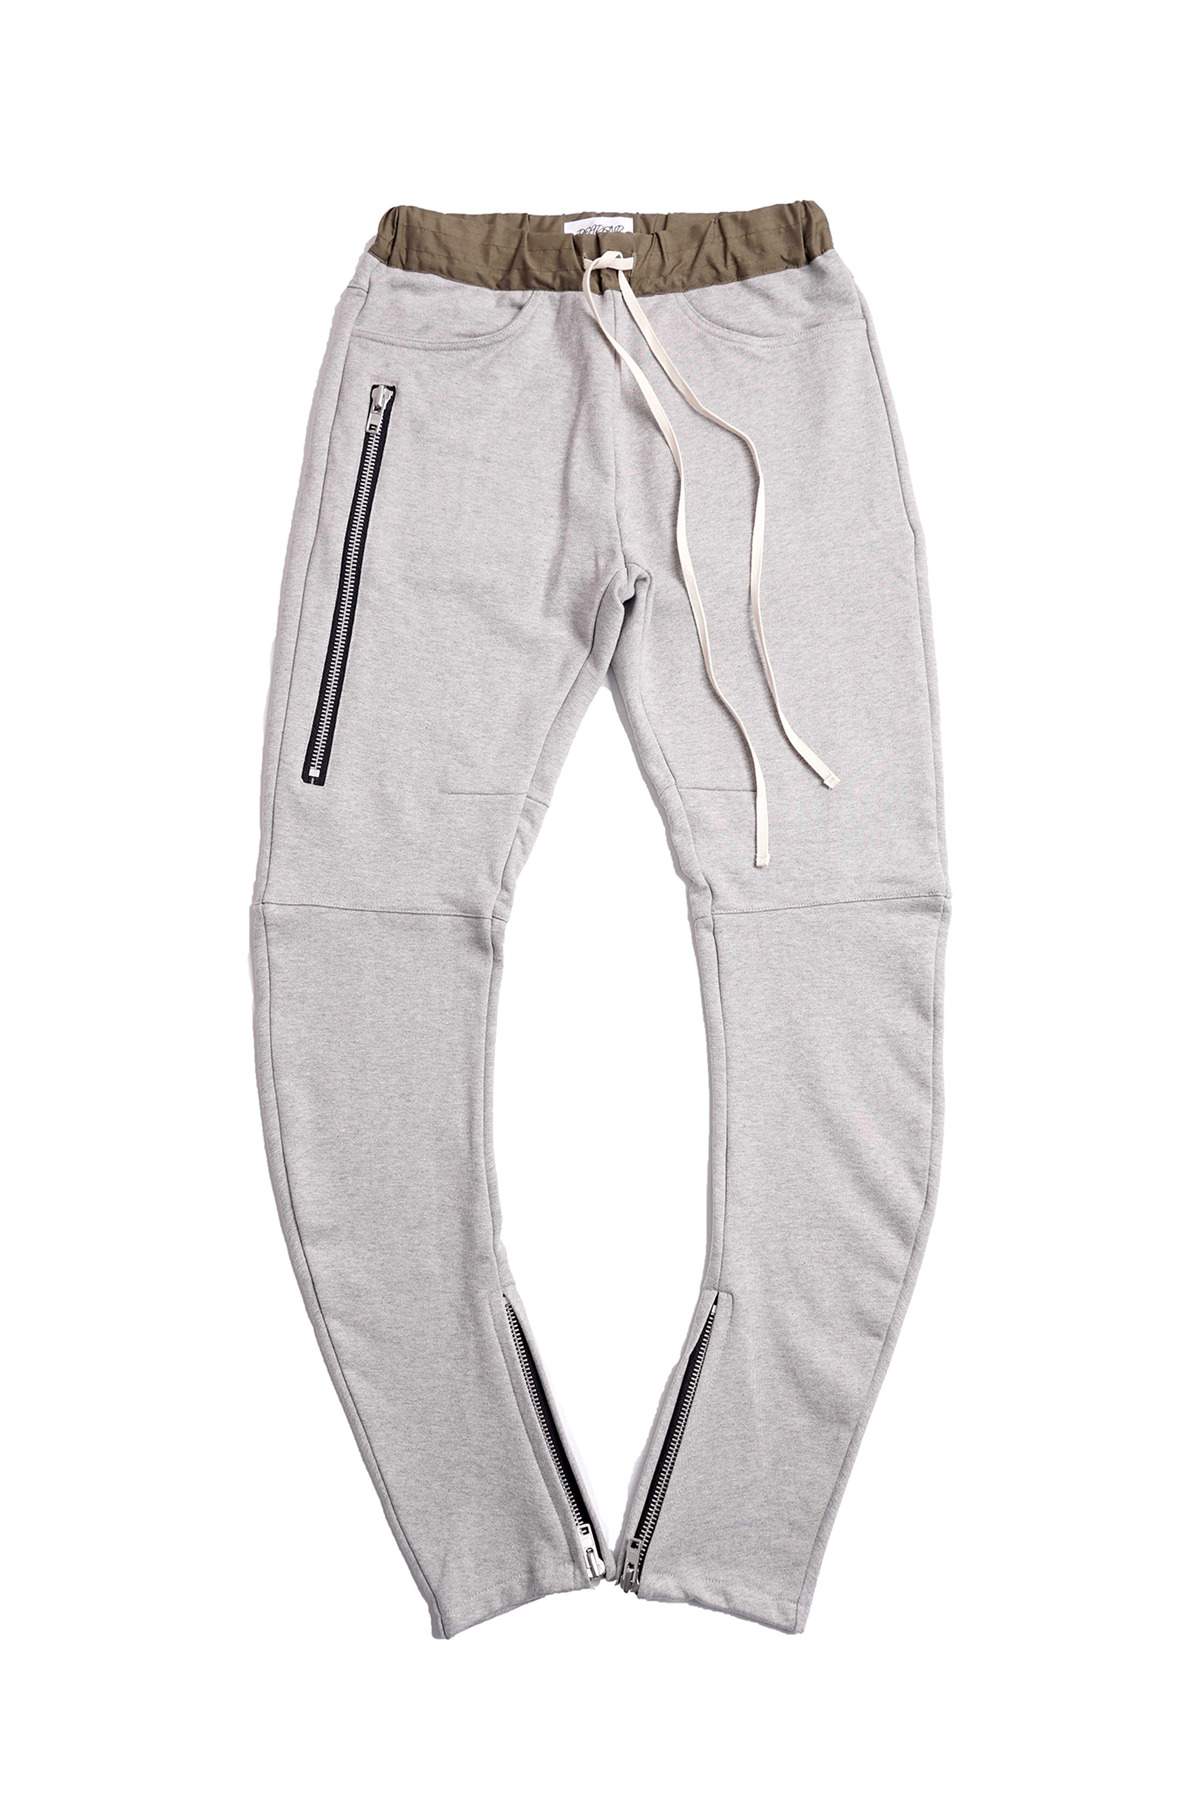 GREY J- DRAWSTRING PANTS